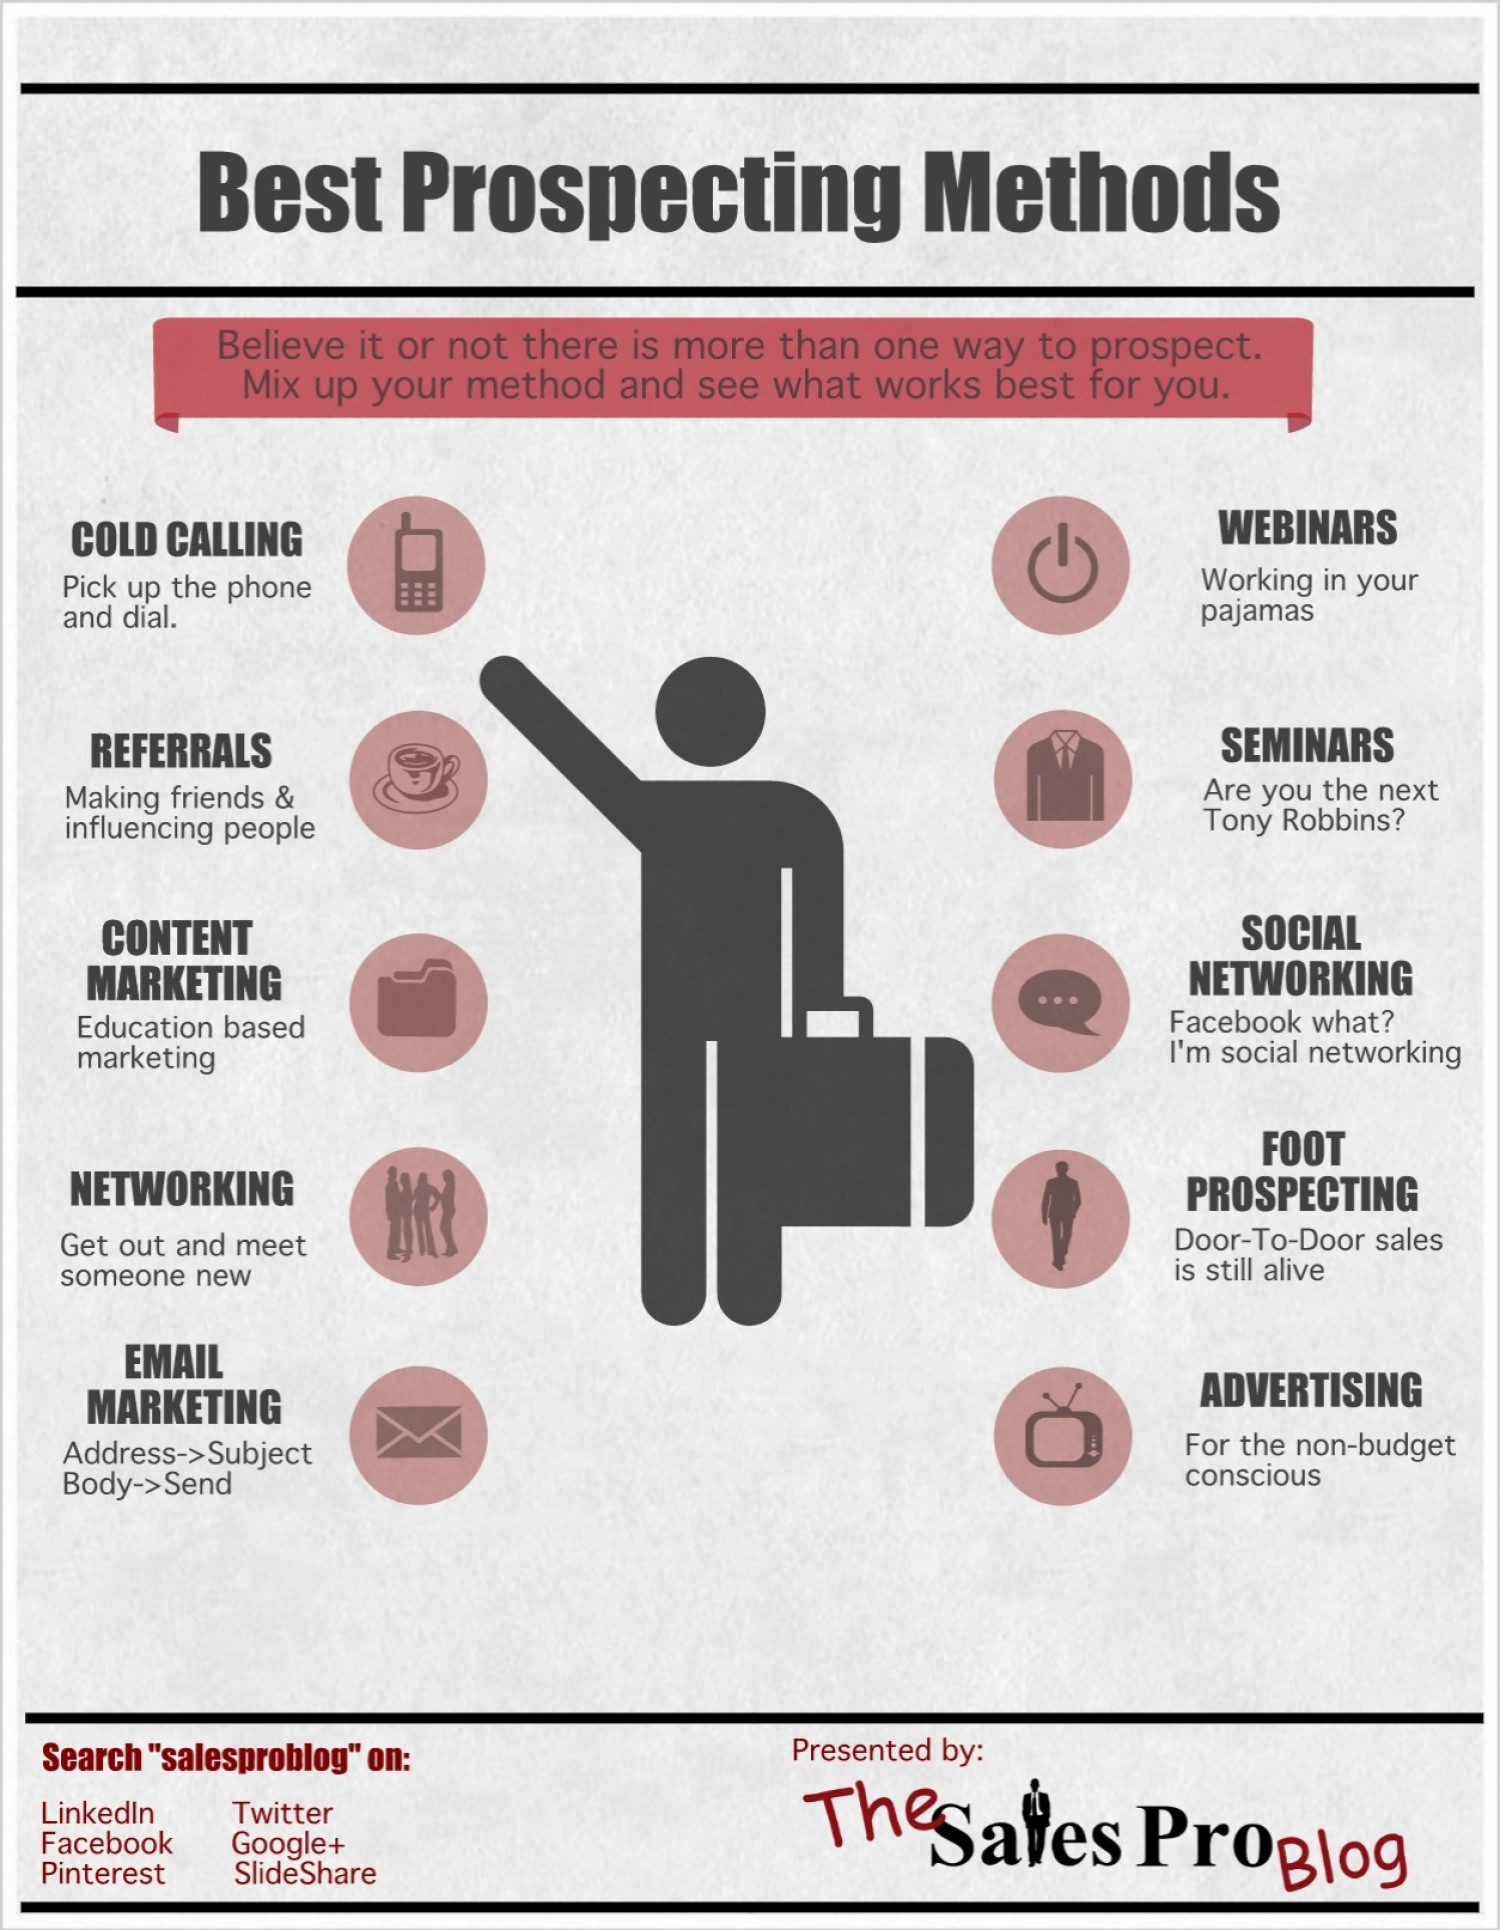 Best Prospecting Methods Infographic